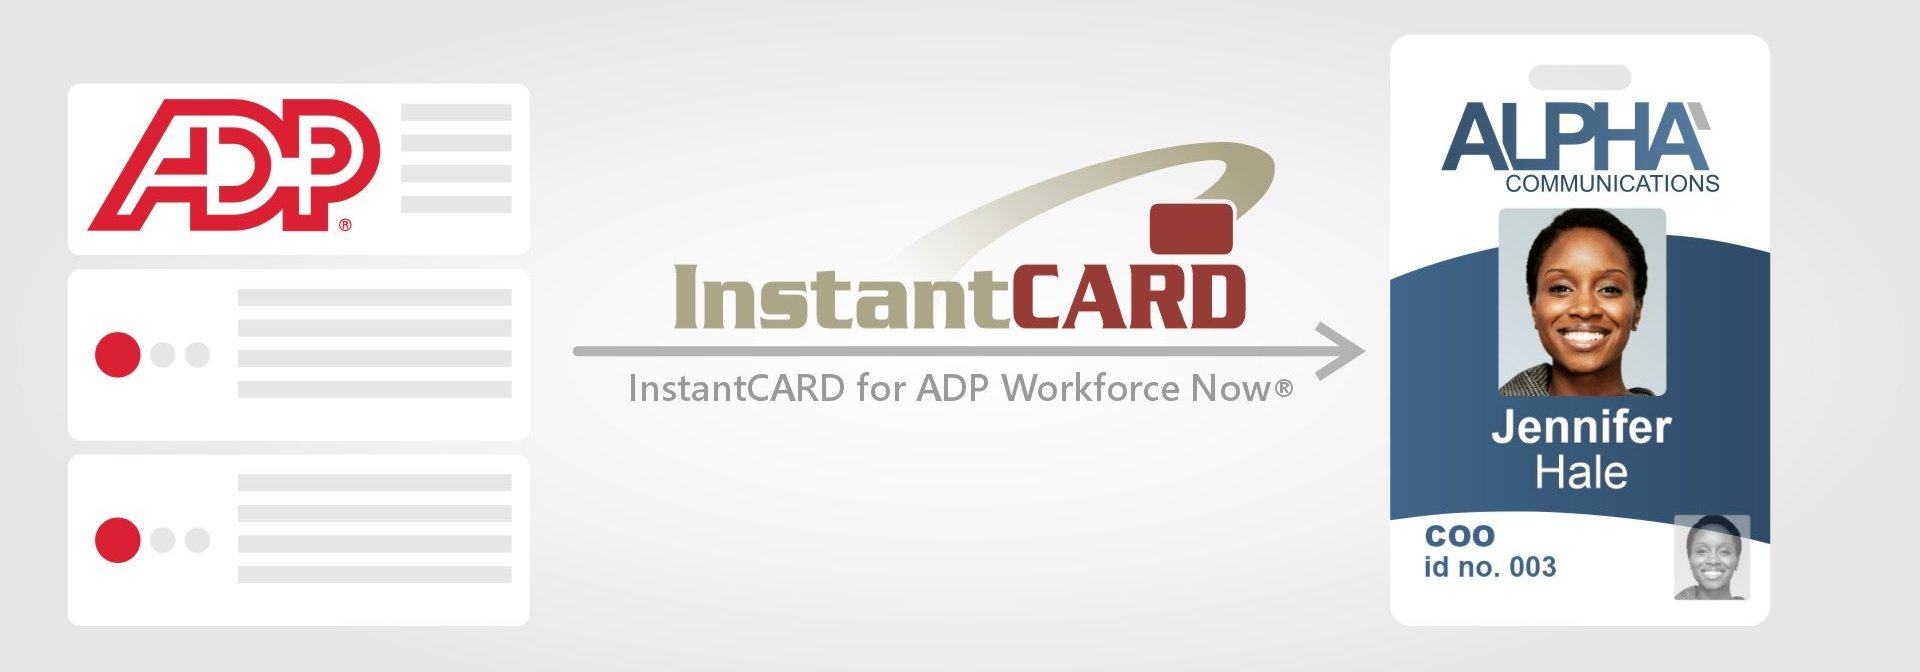 InstantCard for ADP Workforce Now